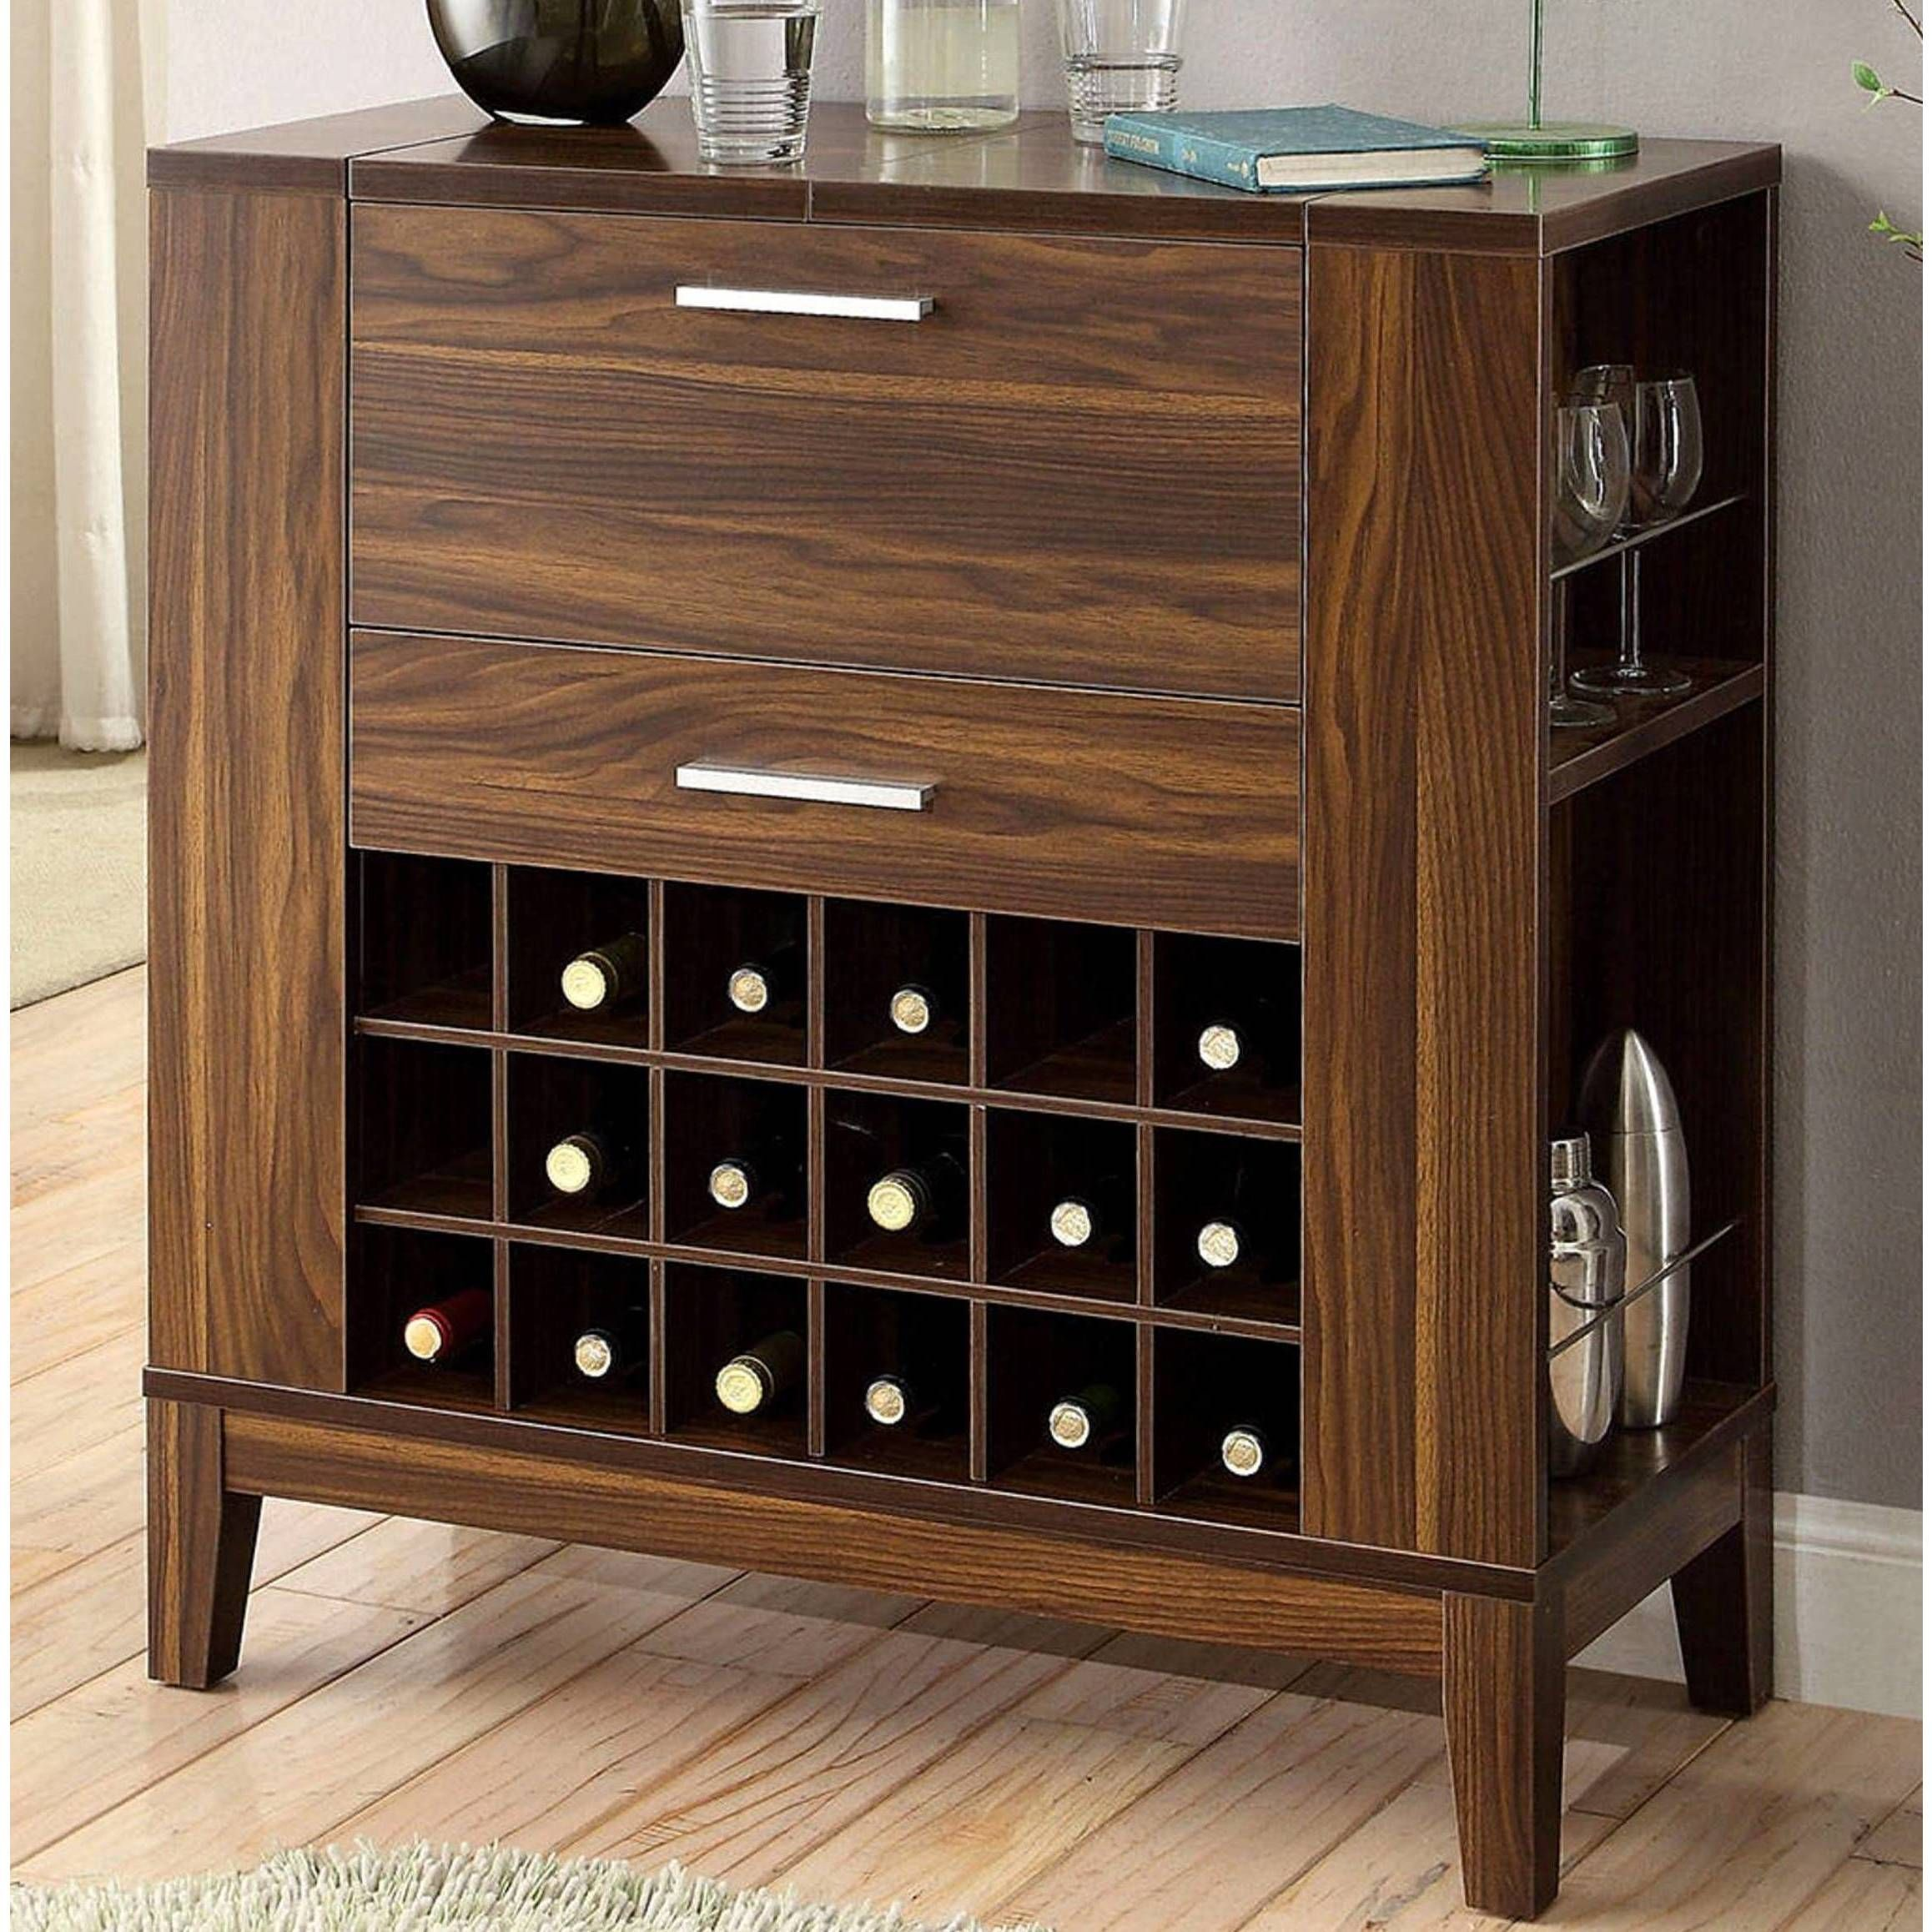 jolly cabinets herwine full catchy also splendent bar cabinet intrigue wine inspiring with kitchen wooden storage plus industrial glass rack size oa then